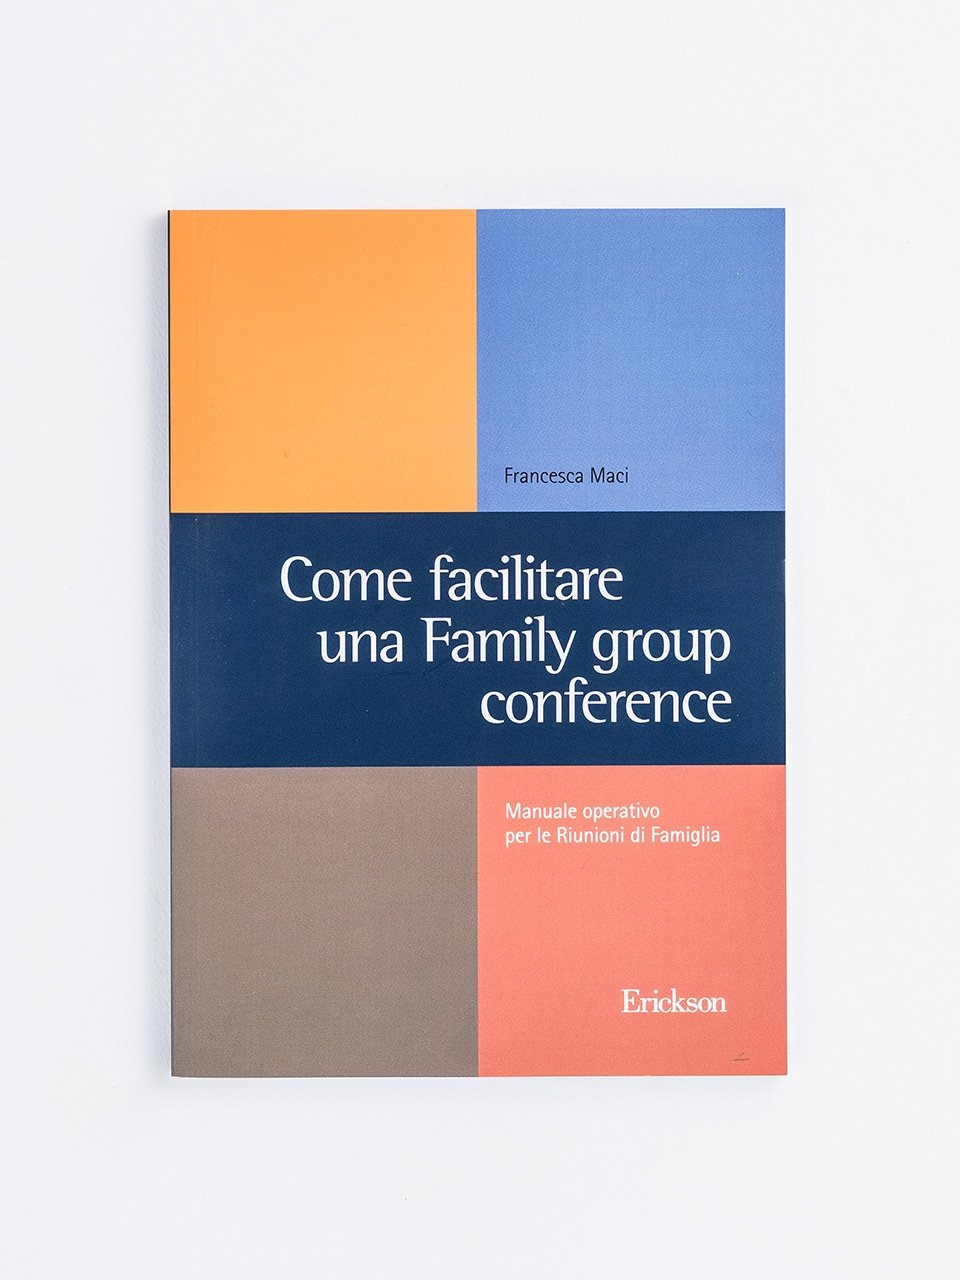 Come facilitare una Family group conference - Con gli altri imparo - Libri - Erickson